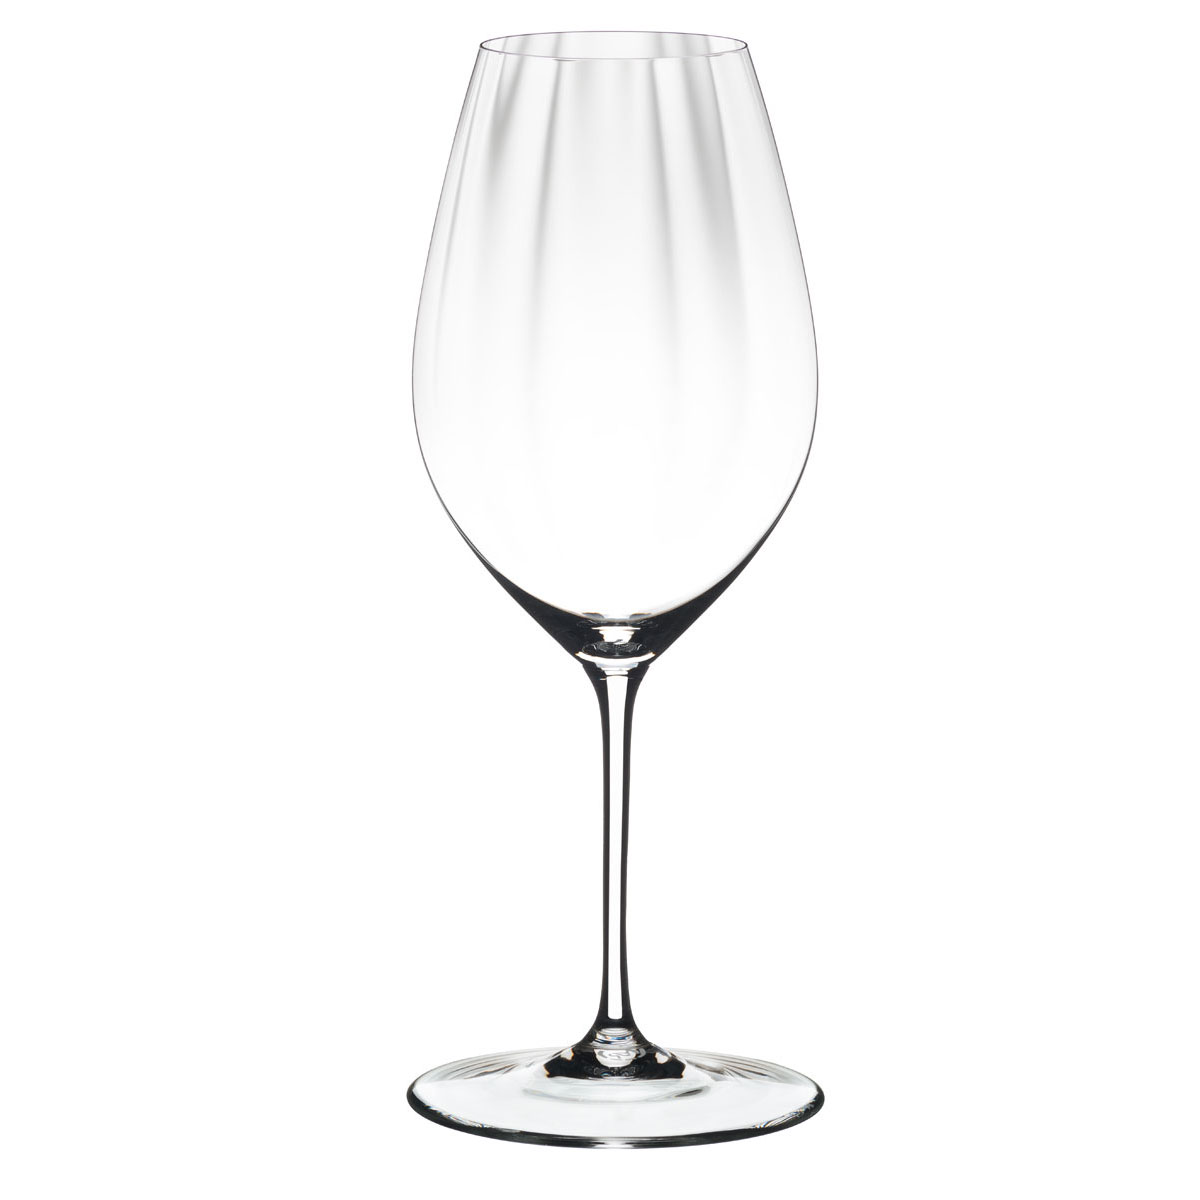 Riedel Performance Riesling Wine Glasses, Pair